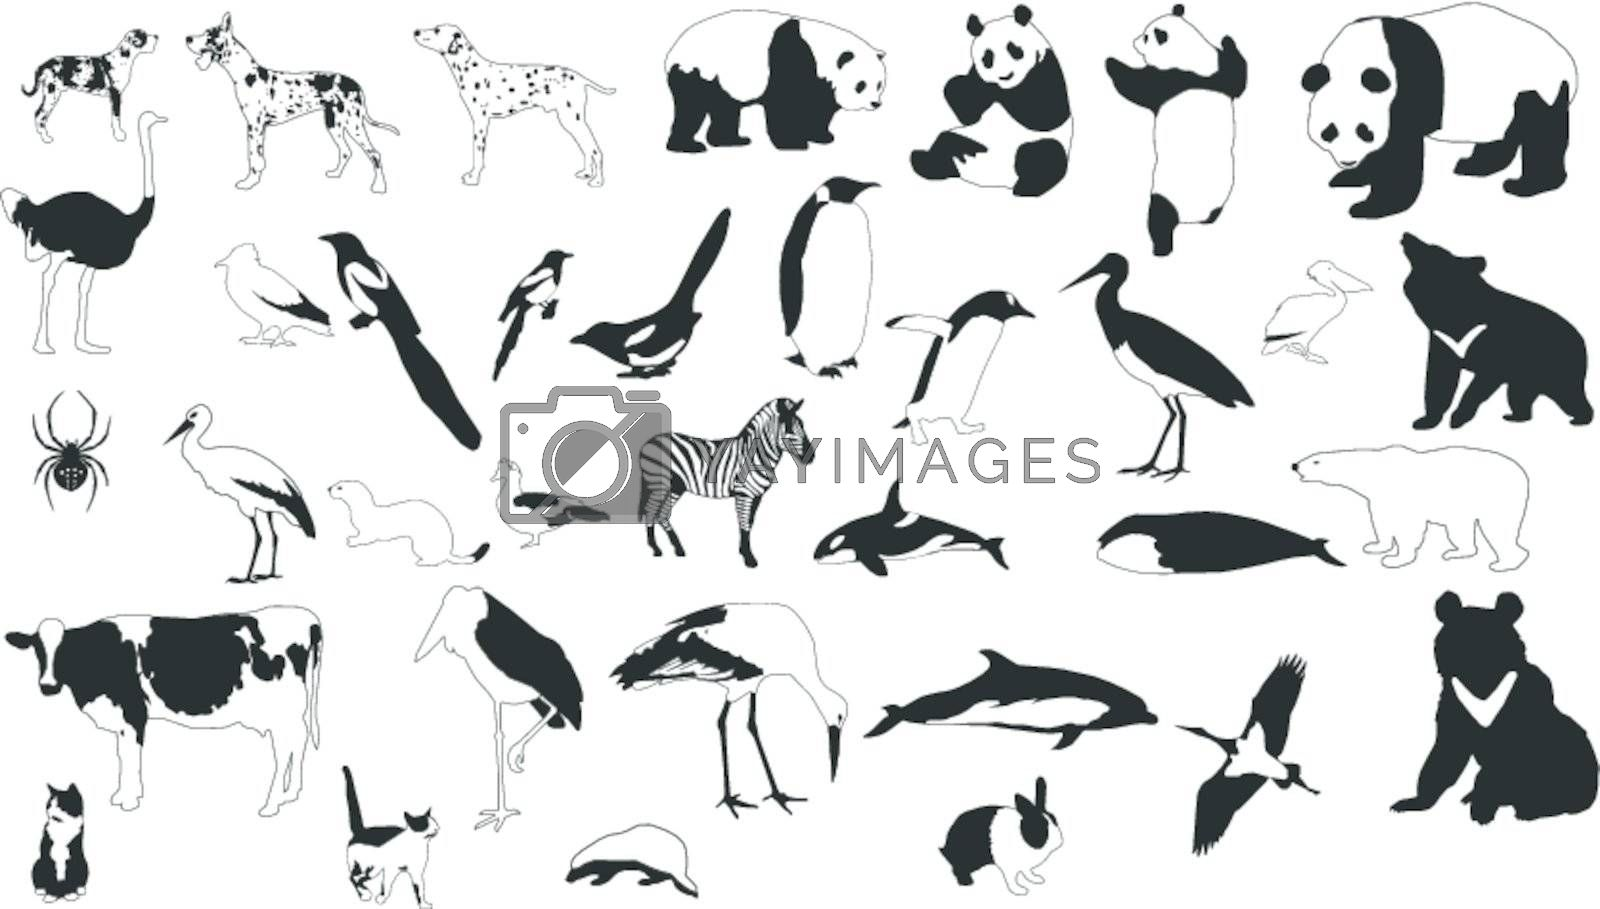 Collection of vector silhouettes of black-and-white animals